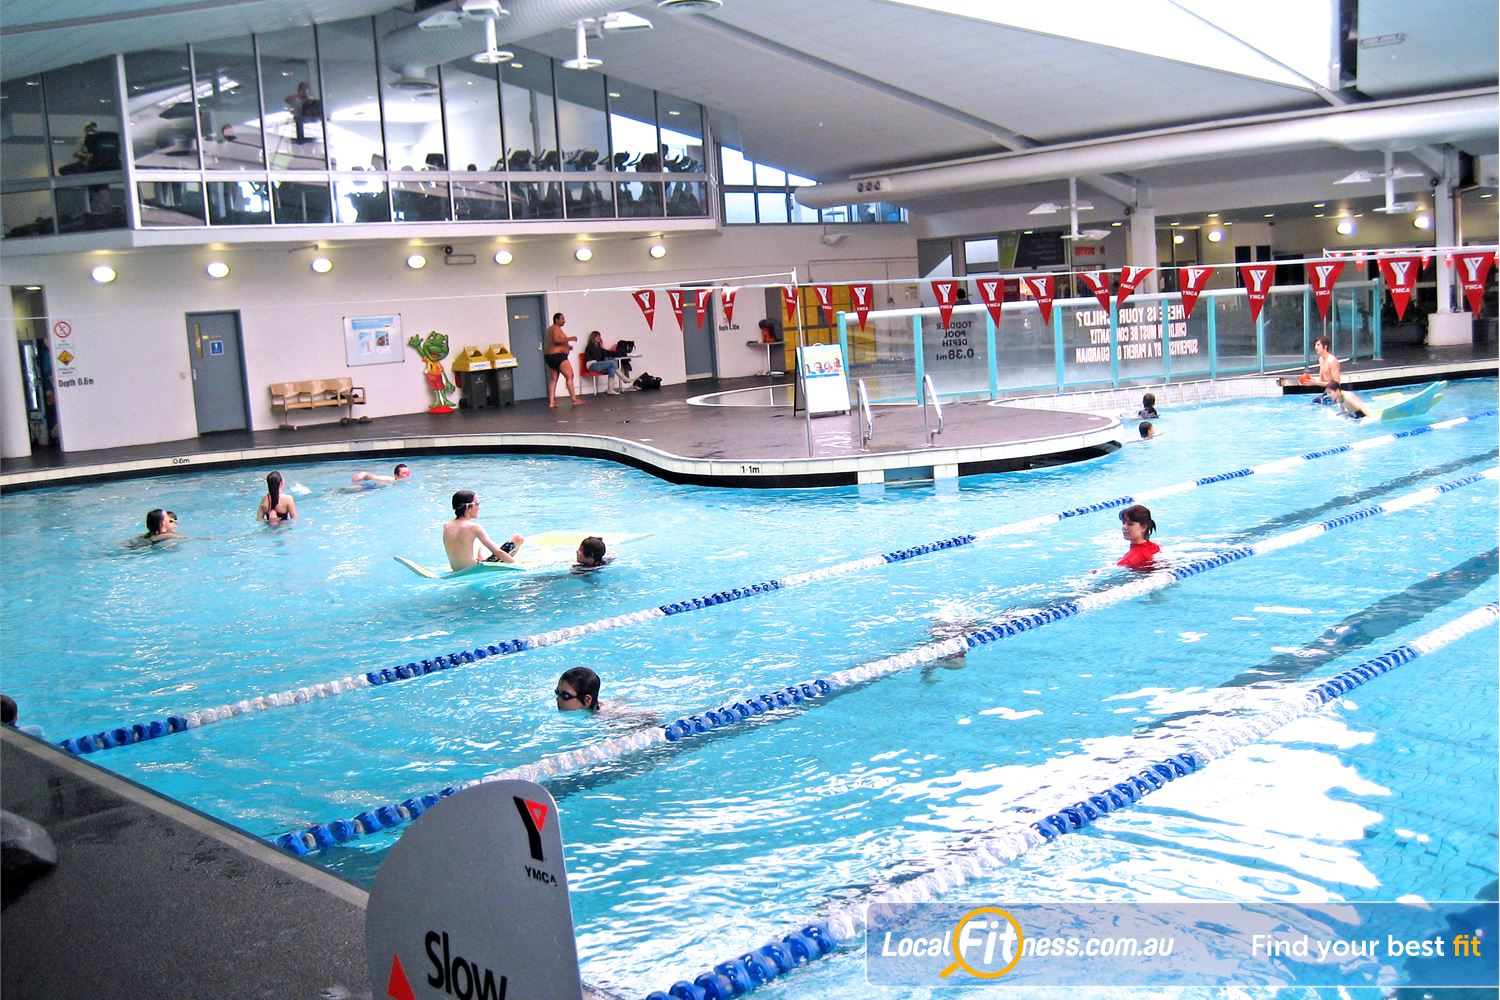 Ascot Vale Leisure Centre Ascot Vale Our Ascot Vale swimming pool is available for lap swimming and aqua classes.